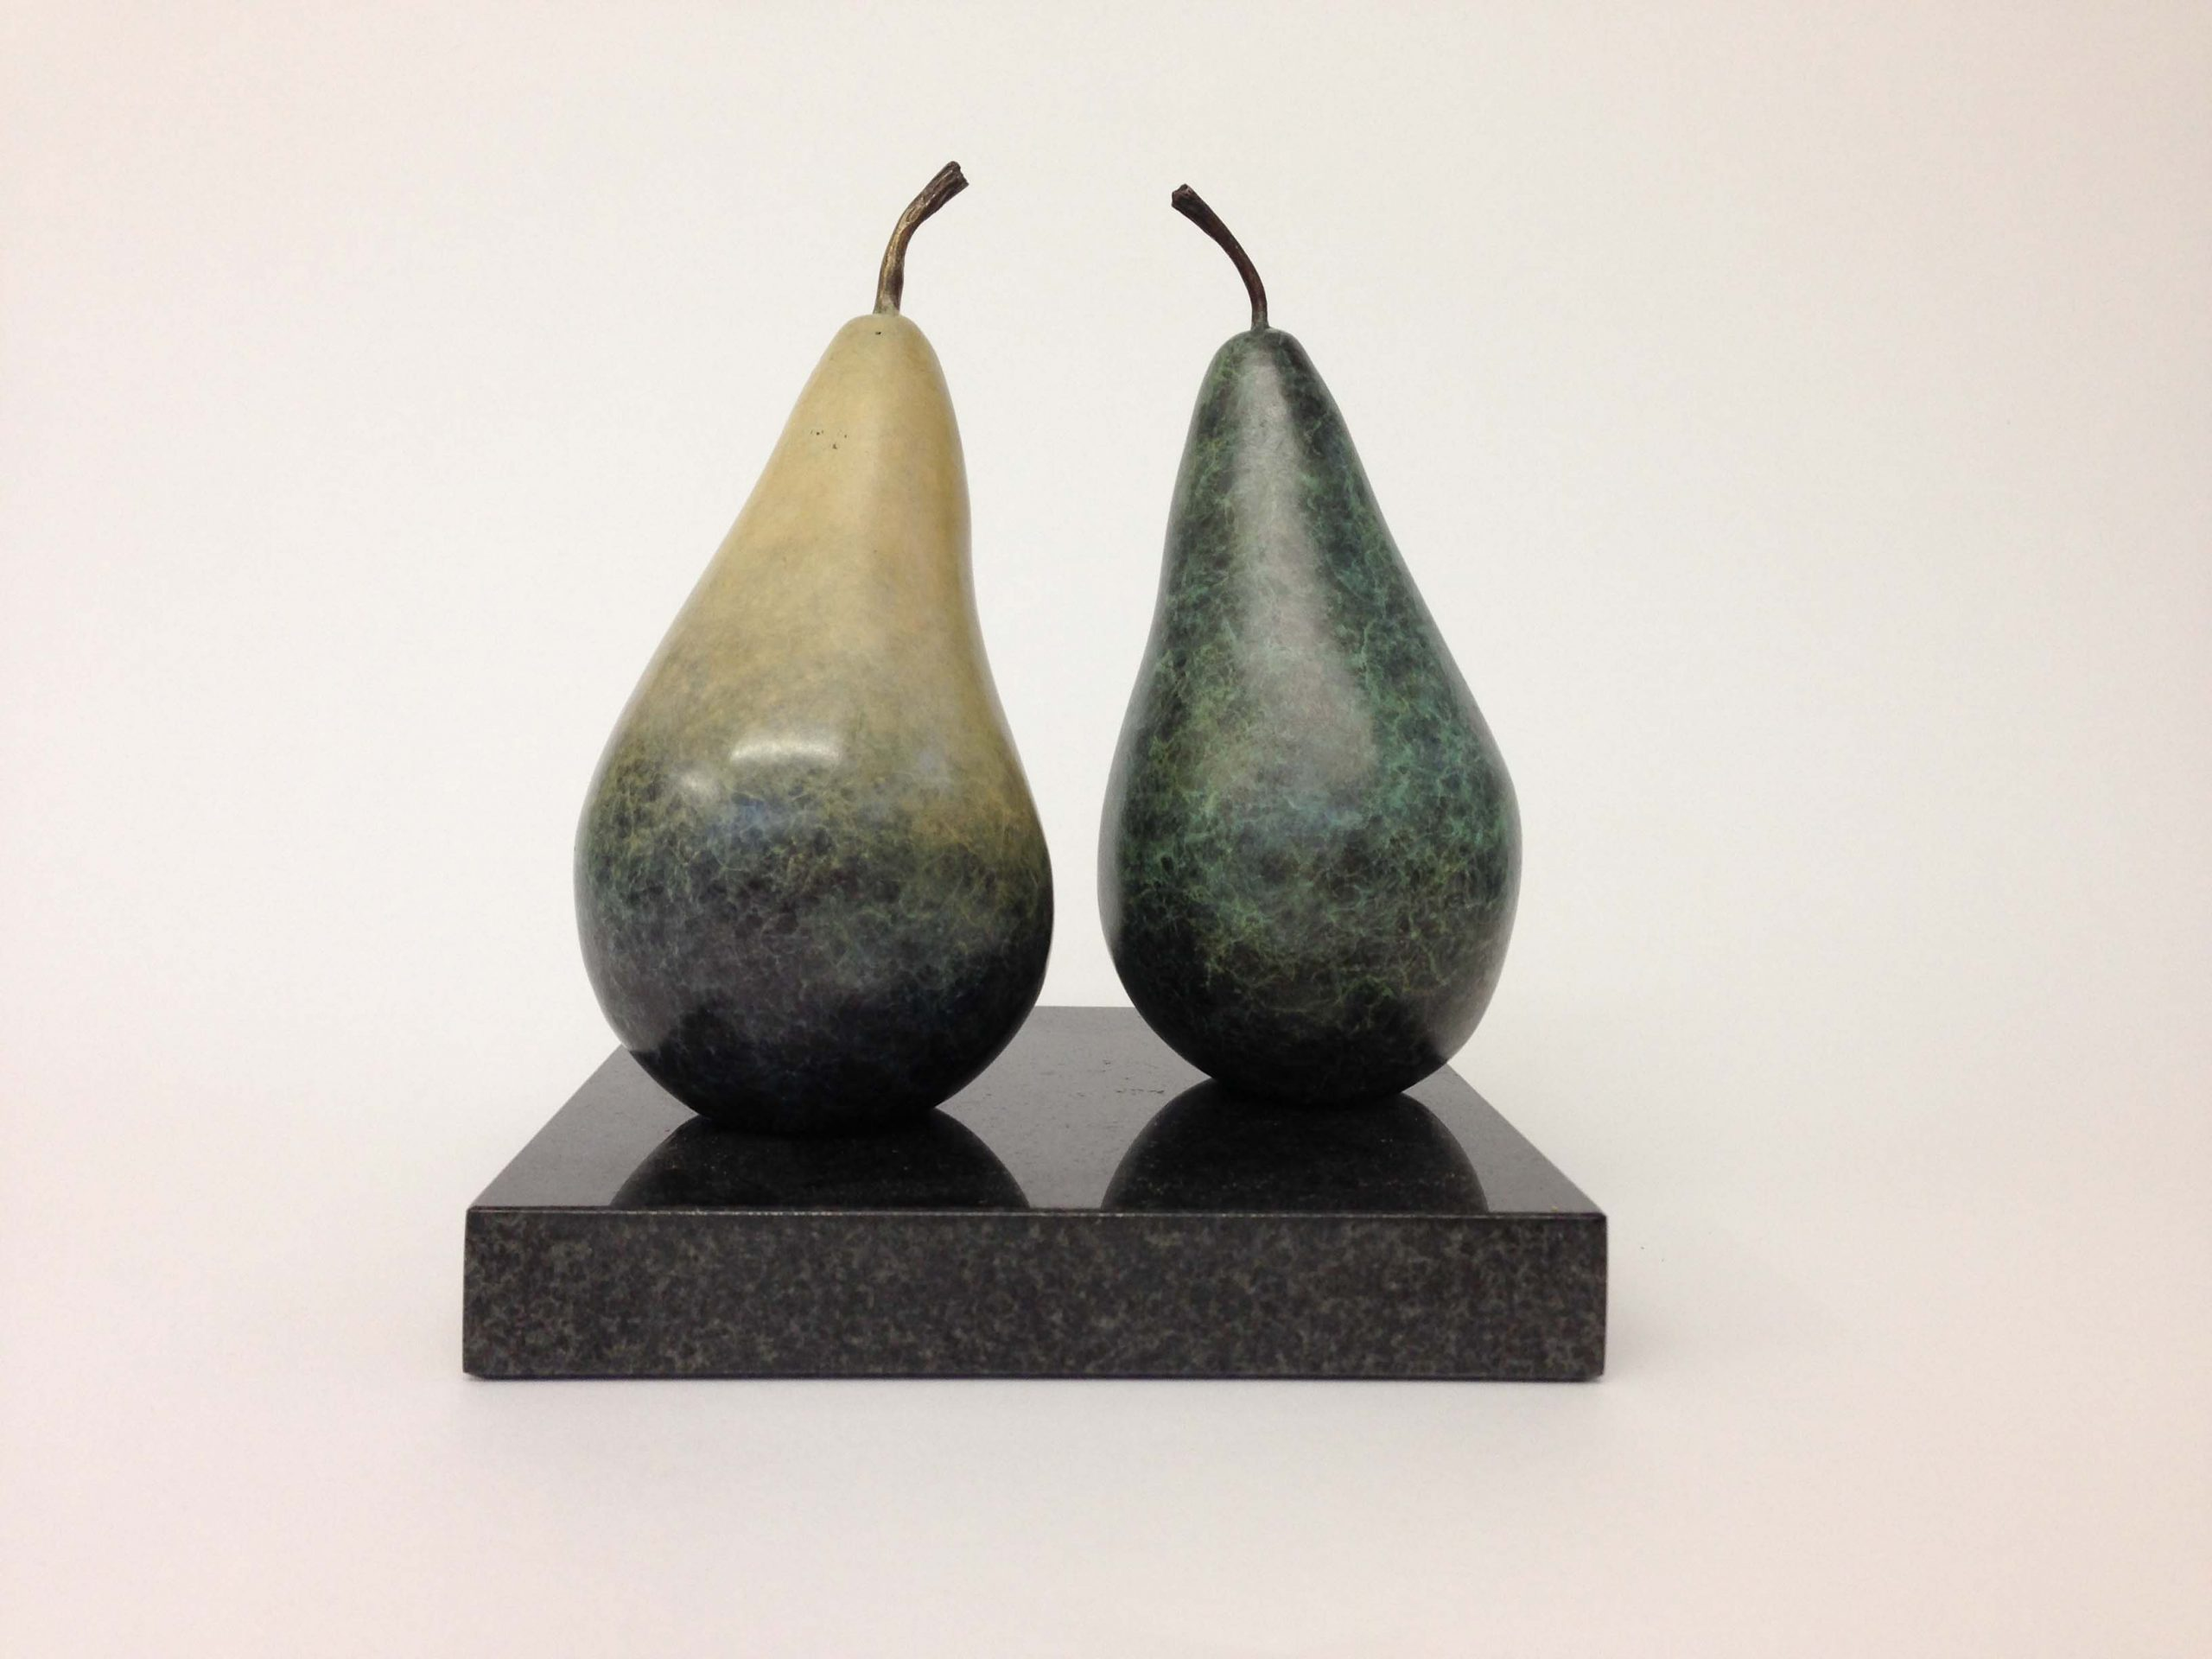 Pair of Little Pears